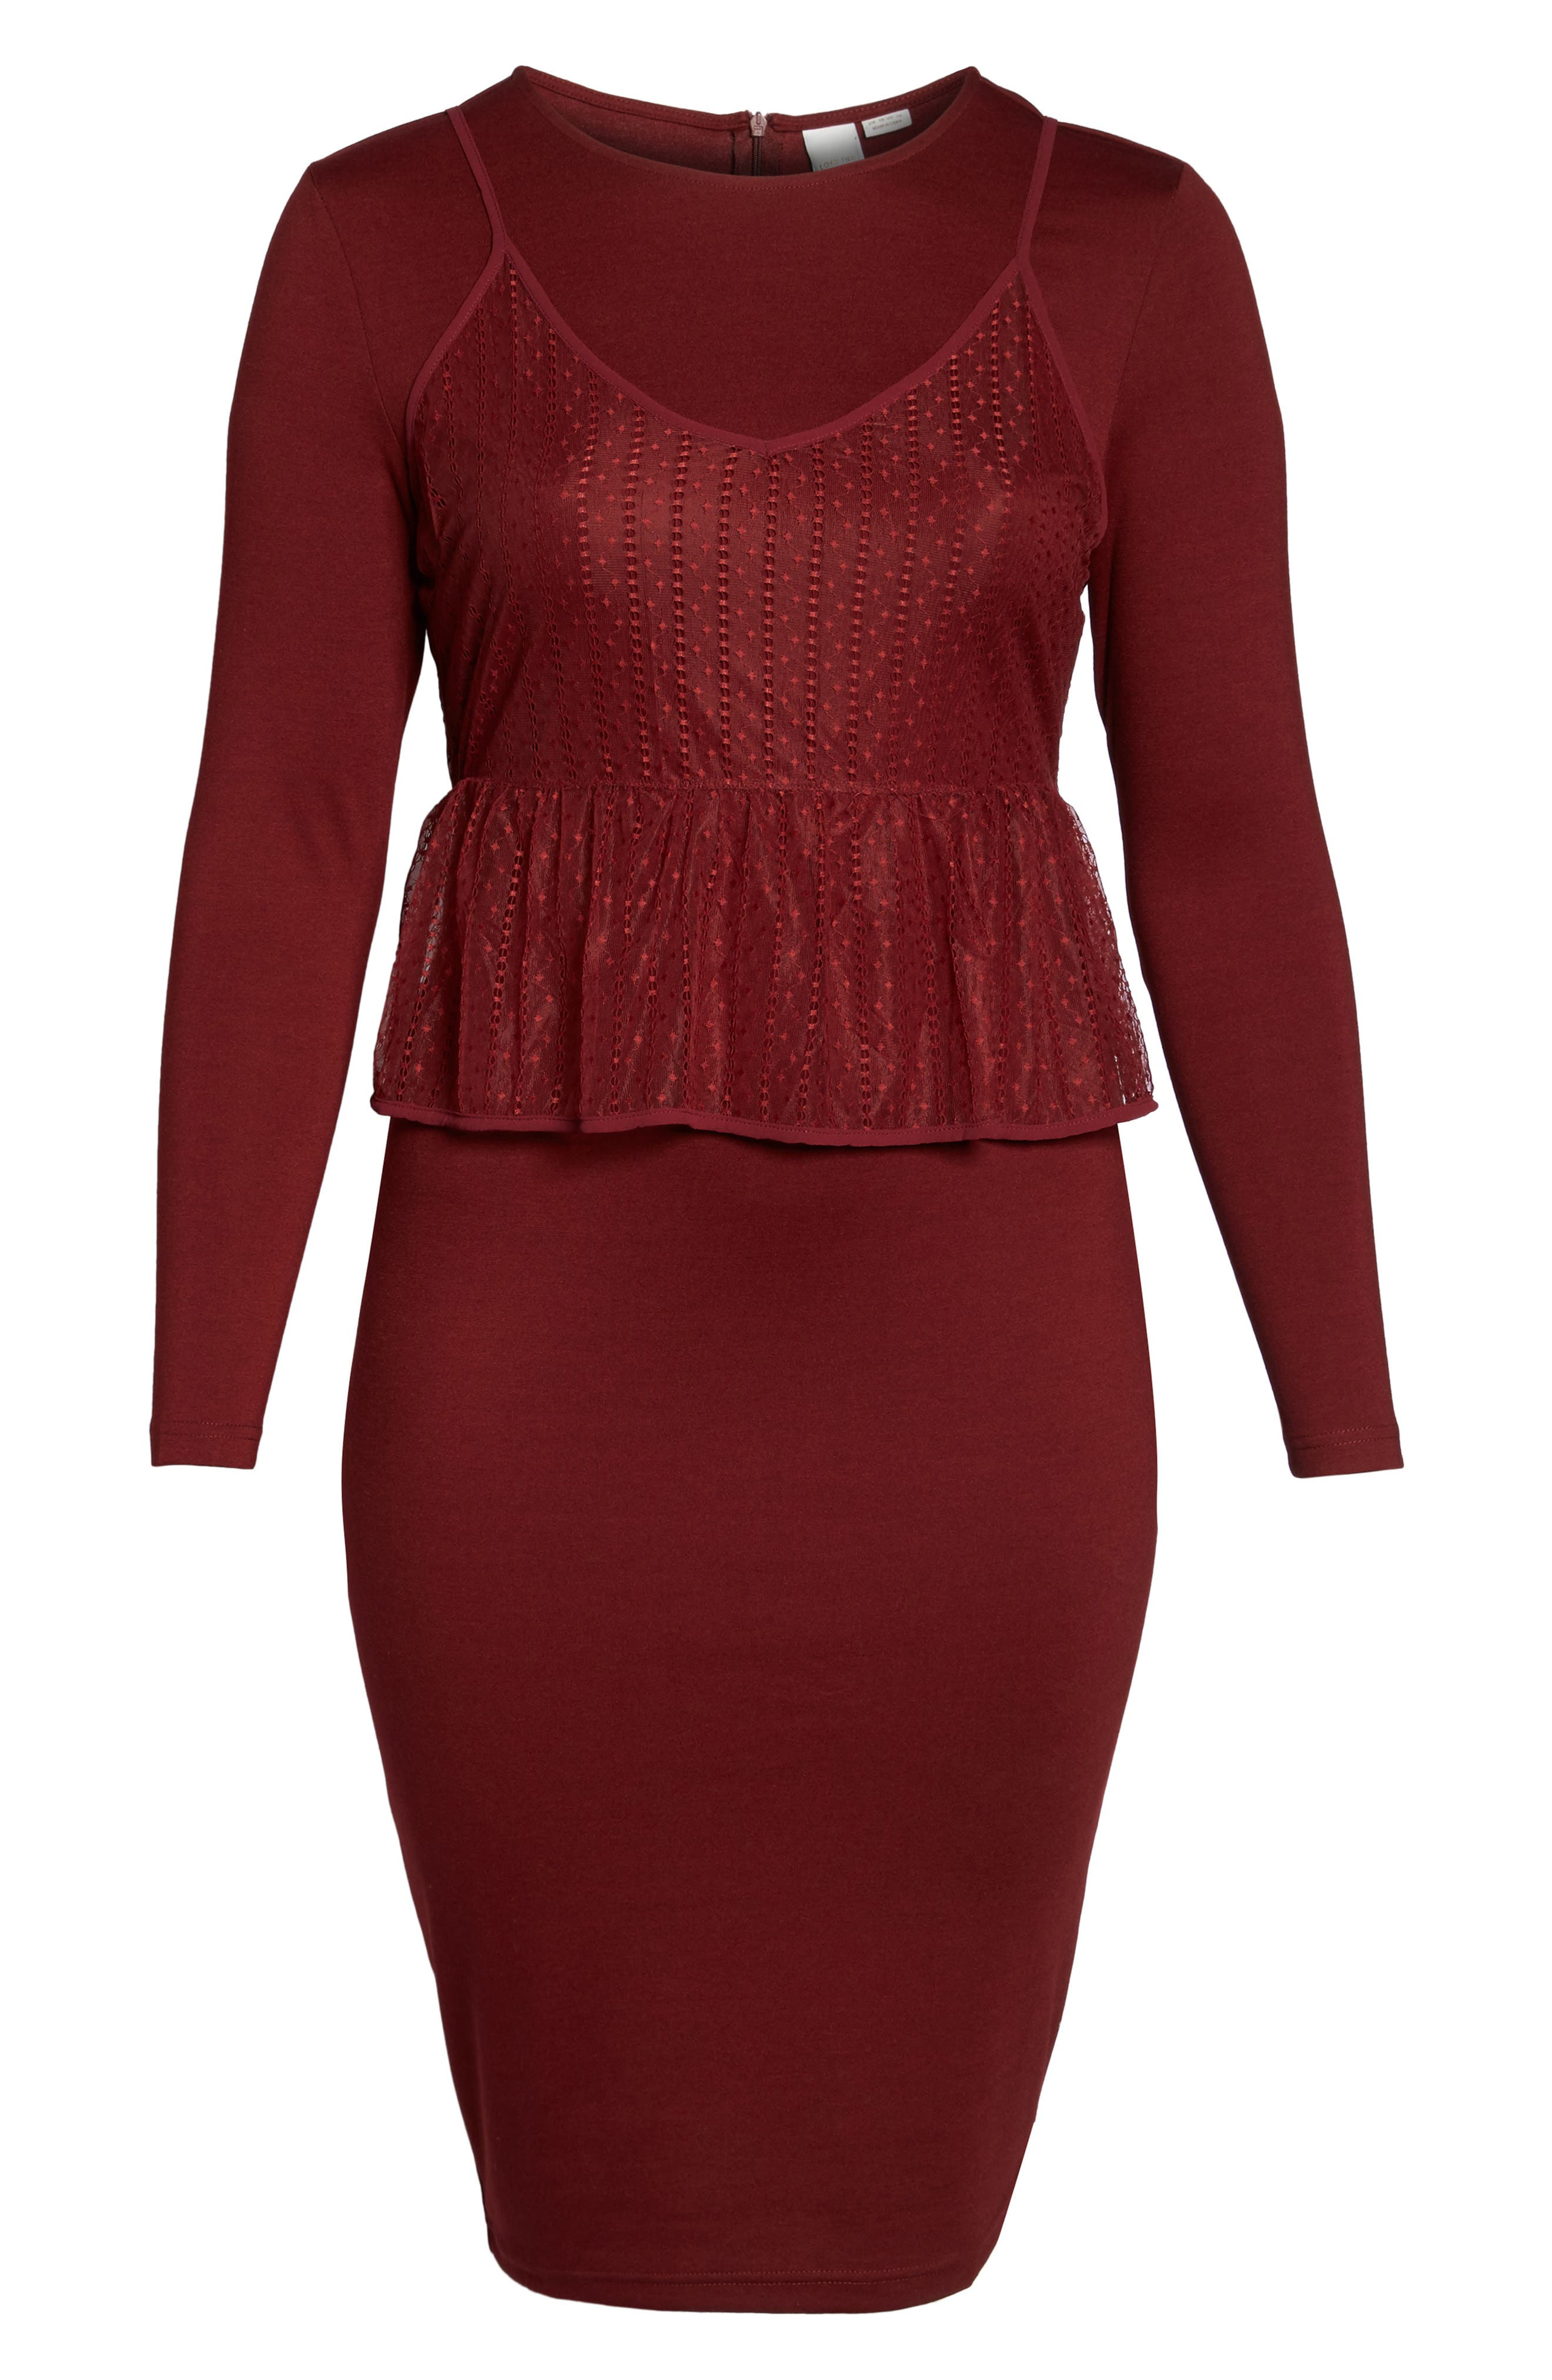 Peplum Overlay Body-Con Dress,                             Alternate thumbnail 7, color,                             Oxblood